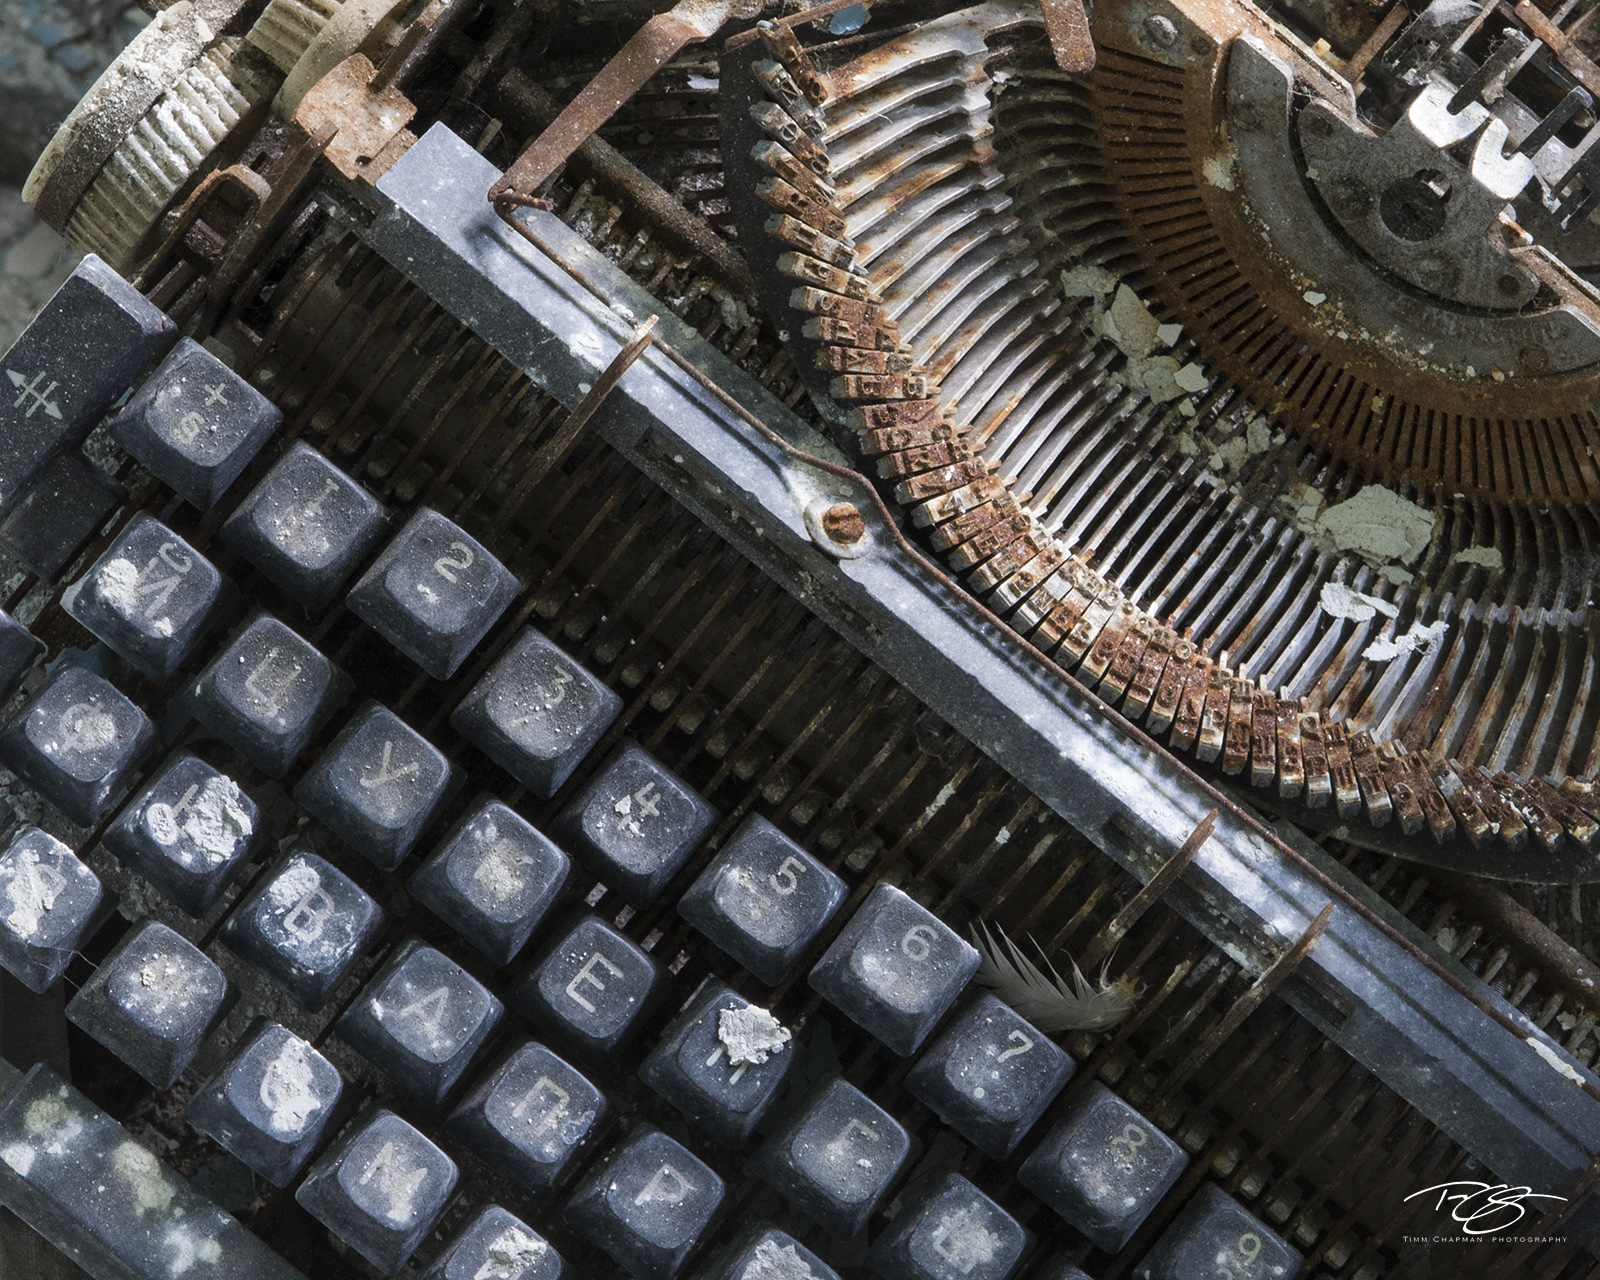 chernobyl, chornobyl, pripyat, exclusion zone, abandoned, forgotten, wasteland, radioactive, decay, peeling paint, typewriter, ghost writer, writer, book, author, dirty, weathered, debris, photo